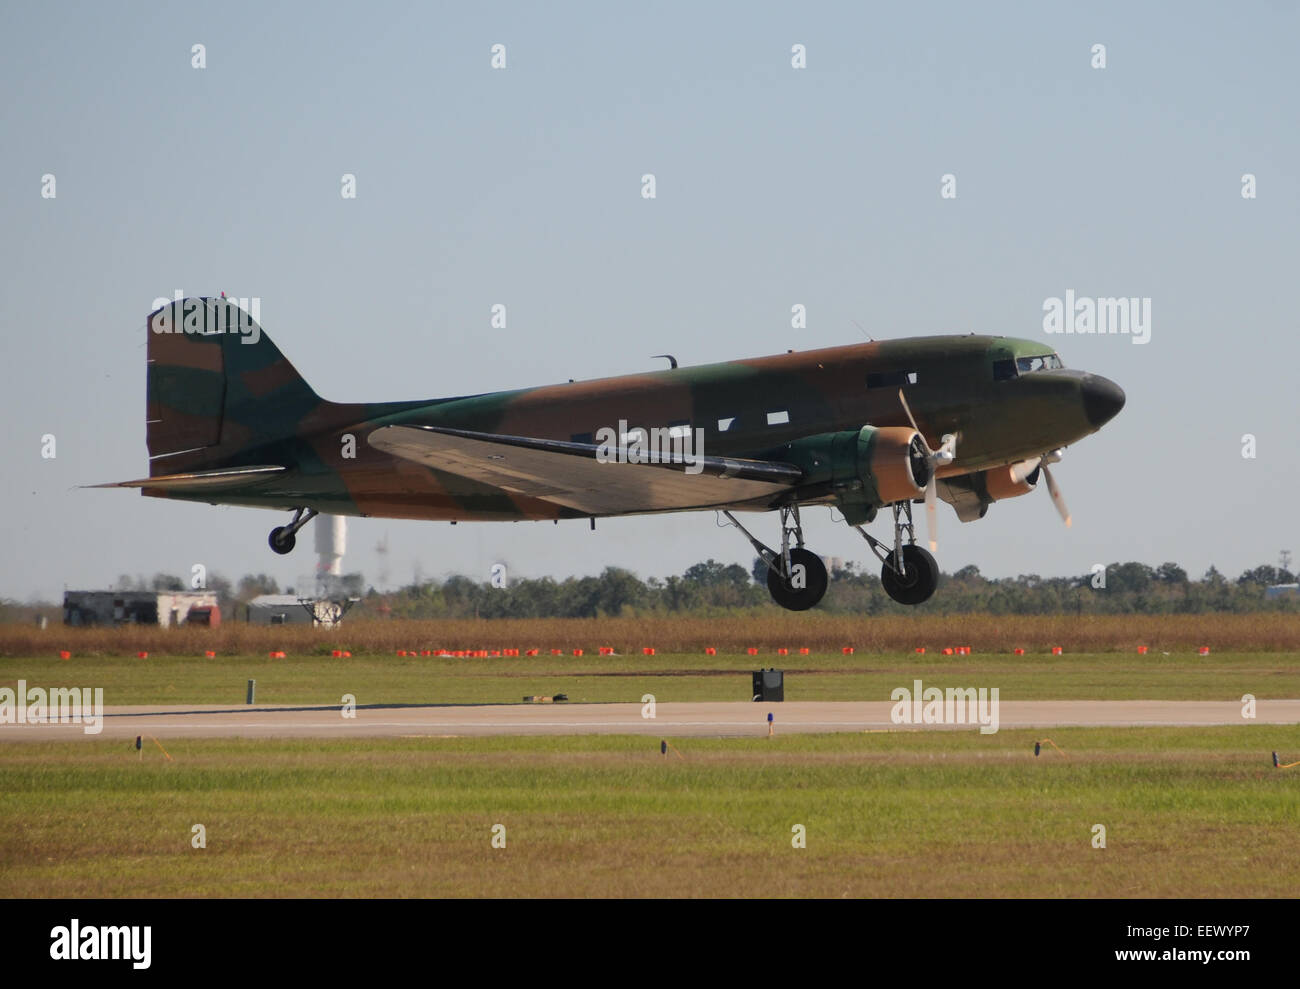 Old propeller airplane taking off from an airfield DC-3 - Stock Image